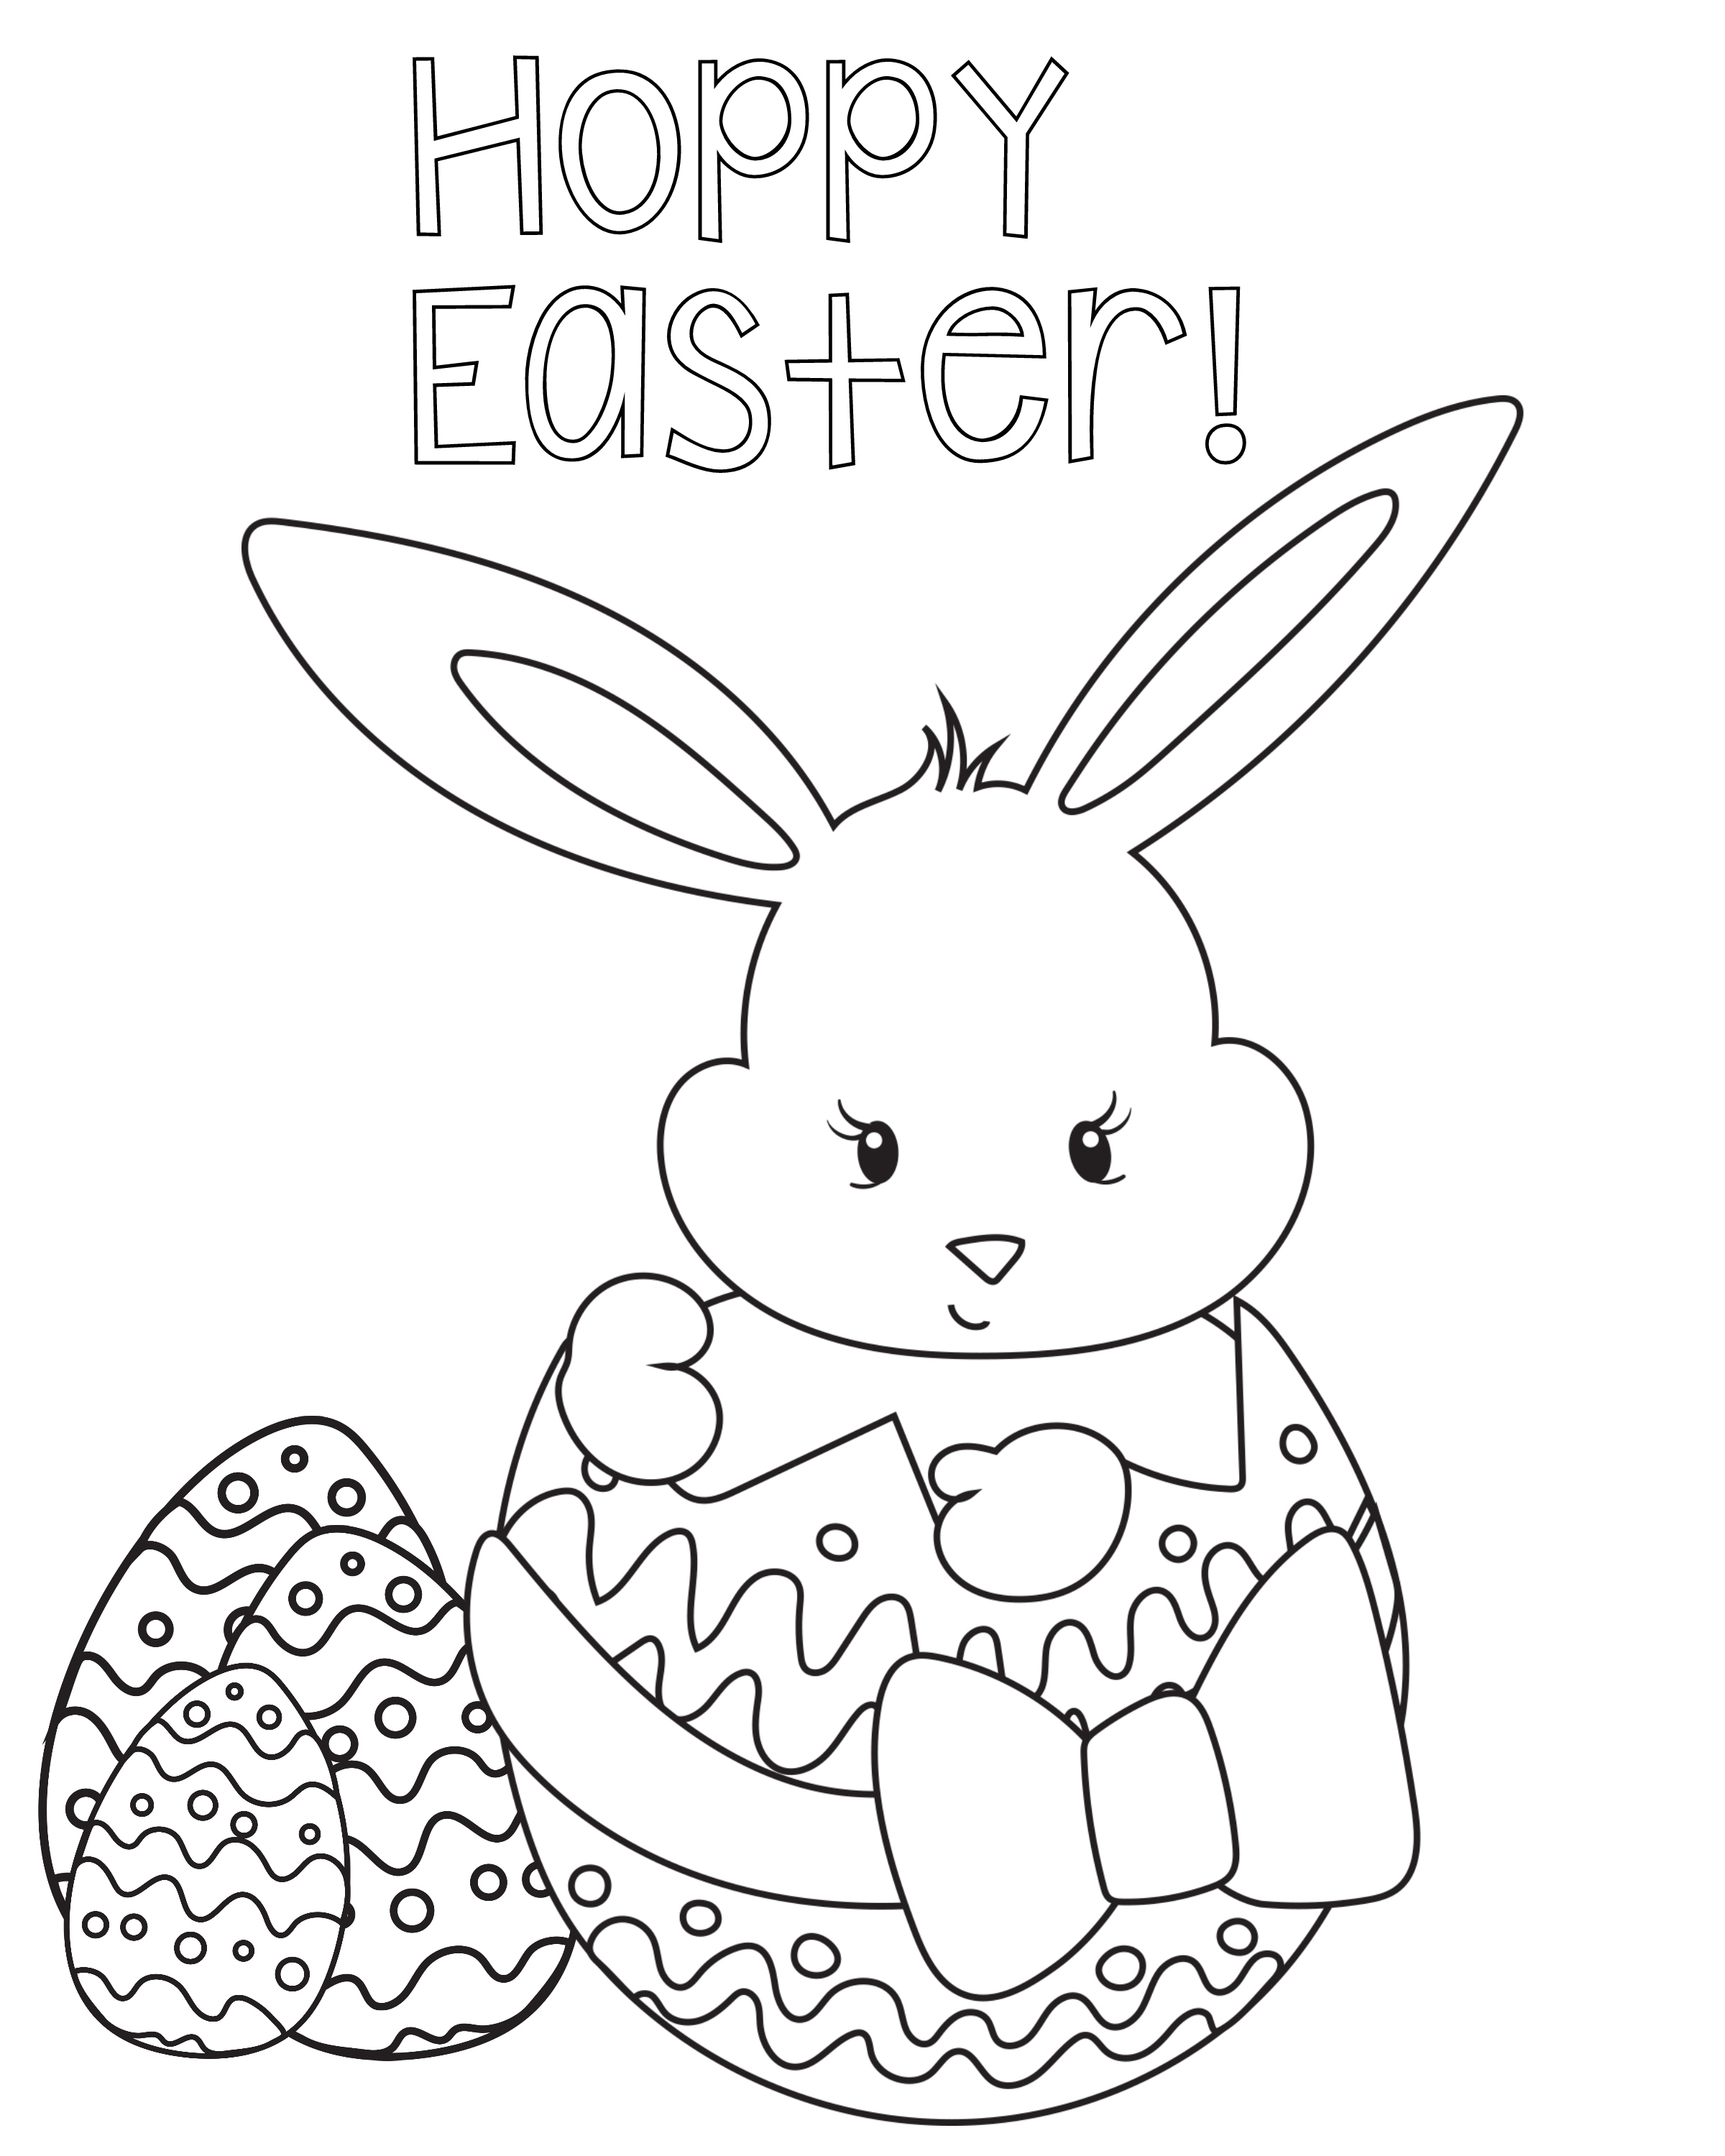 Delighted Bunny Print Out Coloring Pages Easter for Kids Crazy Printable Of Bunny Egg by Rustchic Bucket Printable